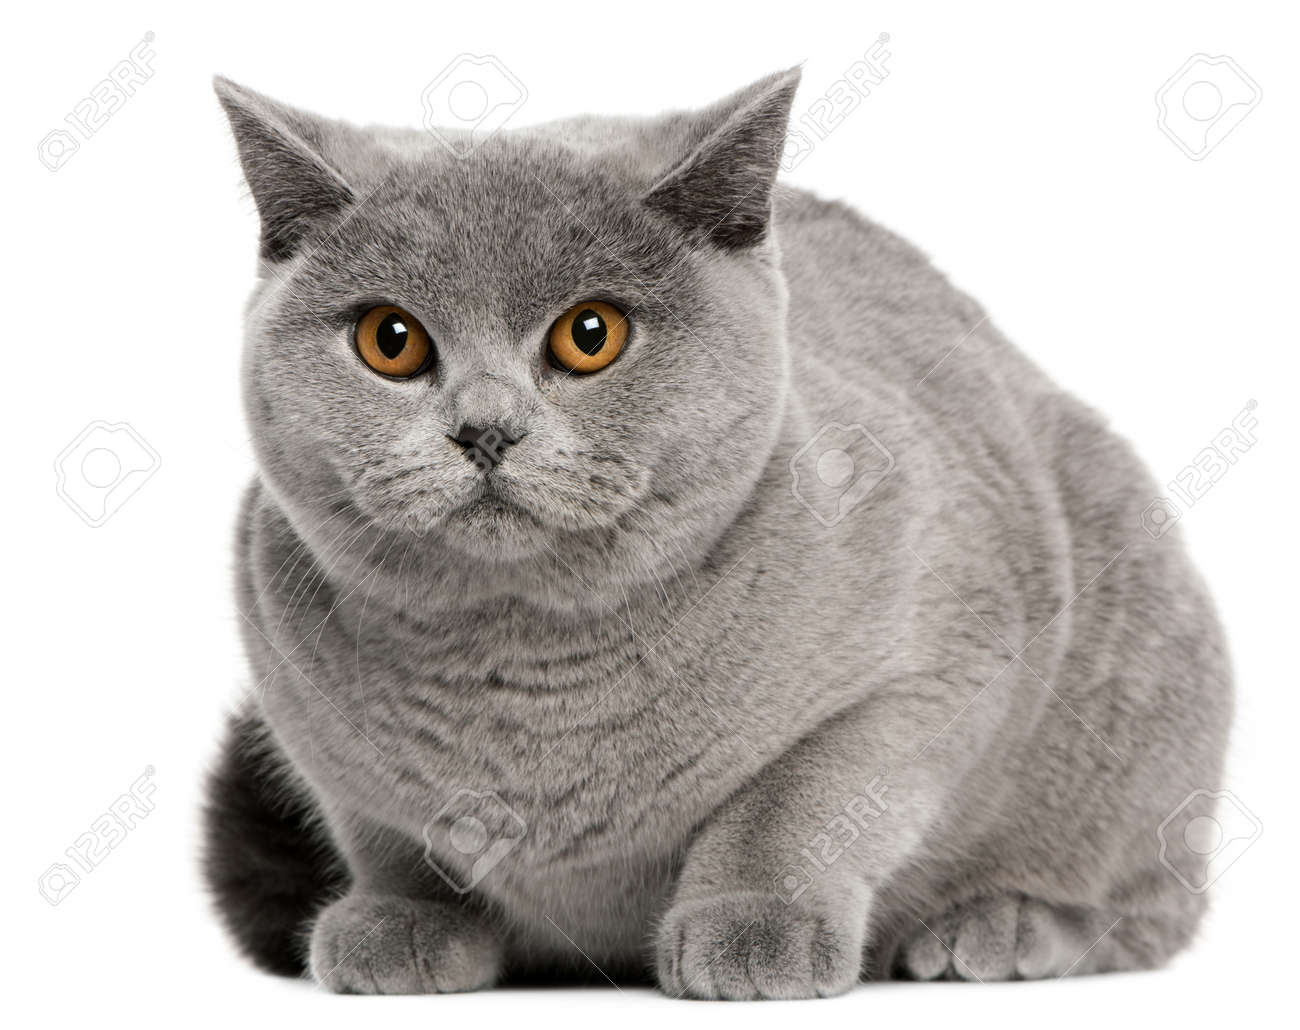 British Shorthair Cat 8 Months Old Sitting In Front White